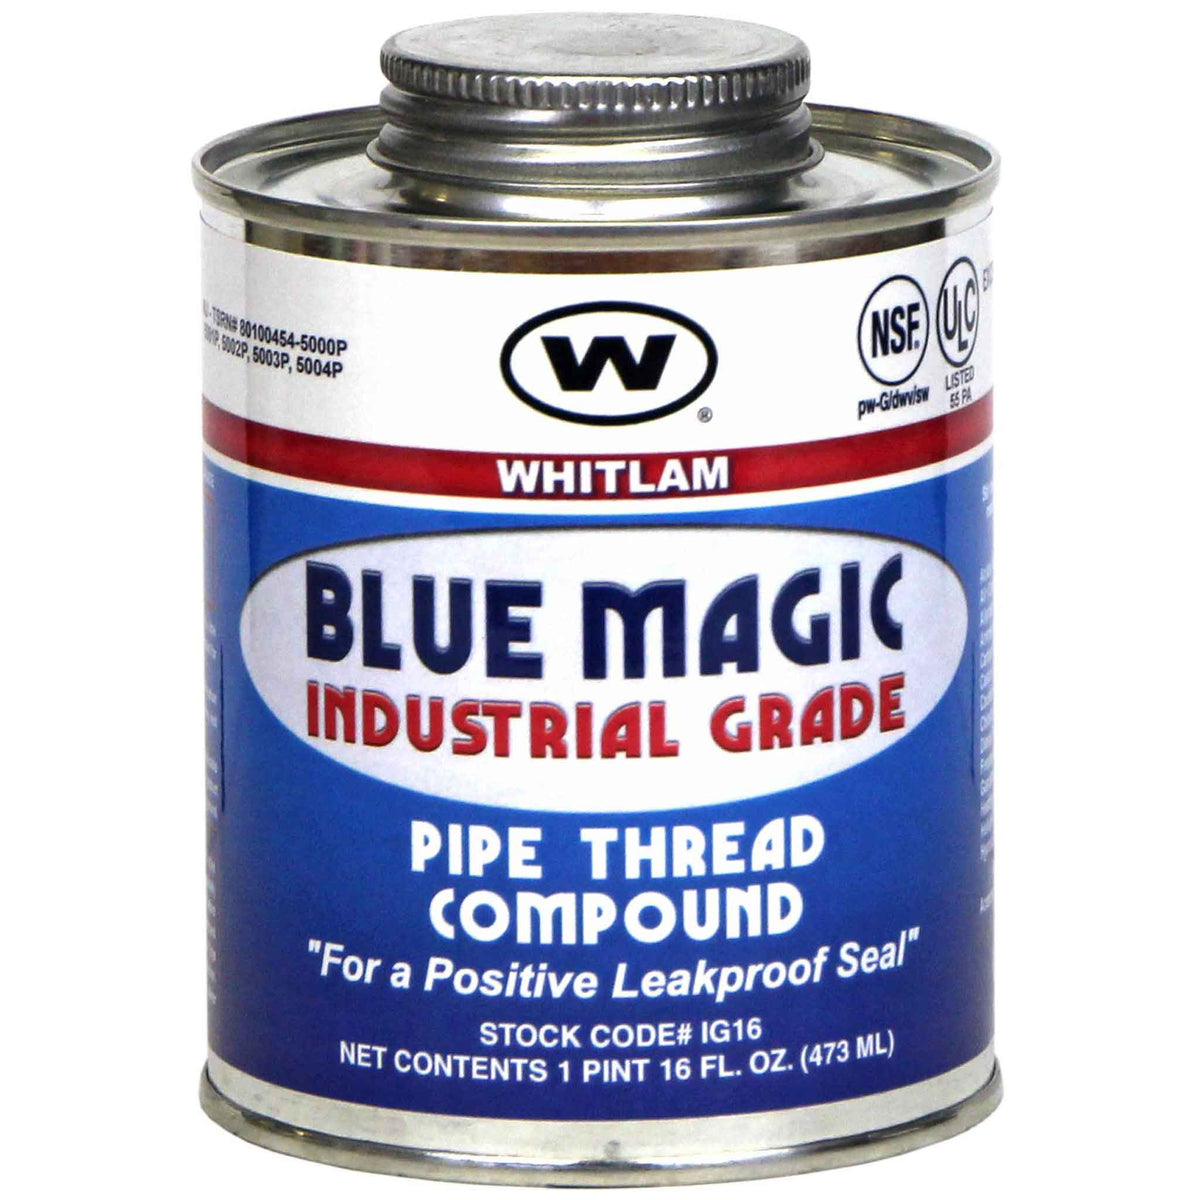 """BLUE MAGIC"" INDUSTRIAL GRADE PIPE THREAD COMPOUND"